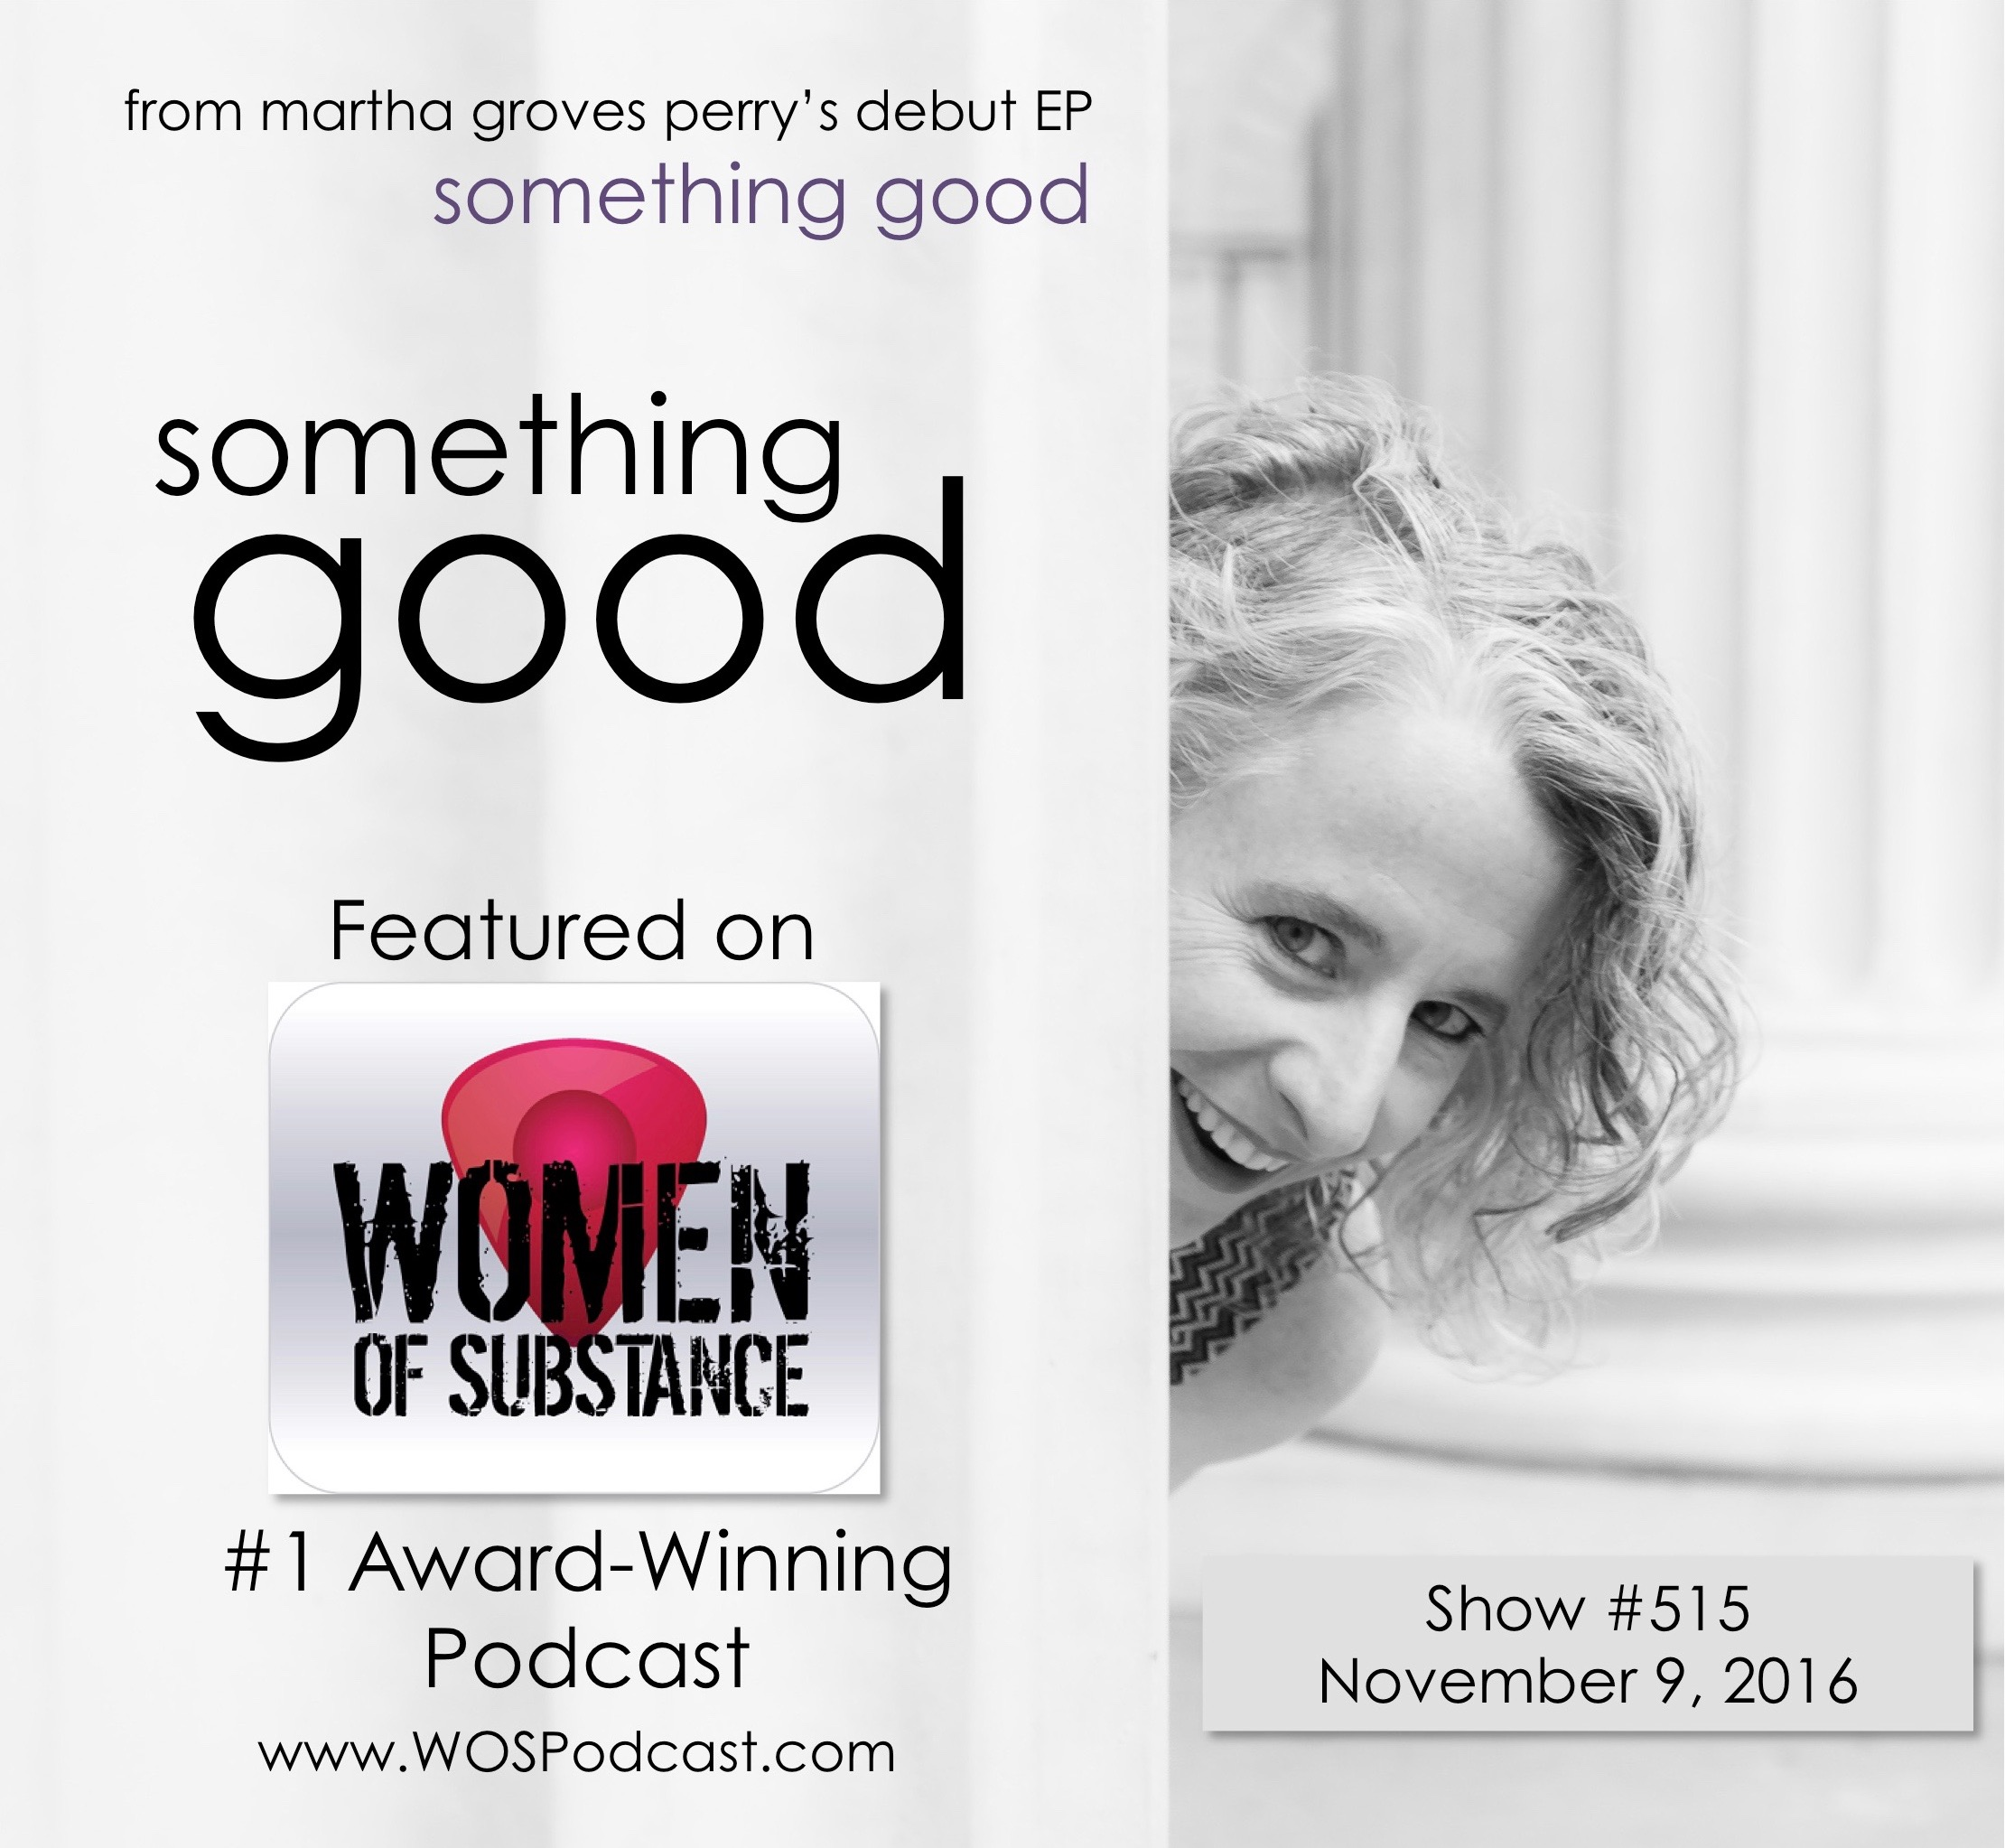 somethinggoodwospodcastannouncement_9november2016